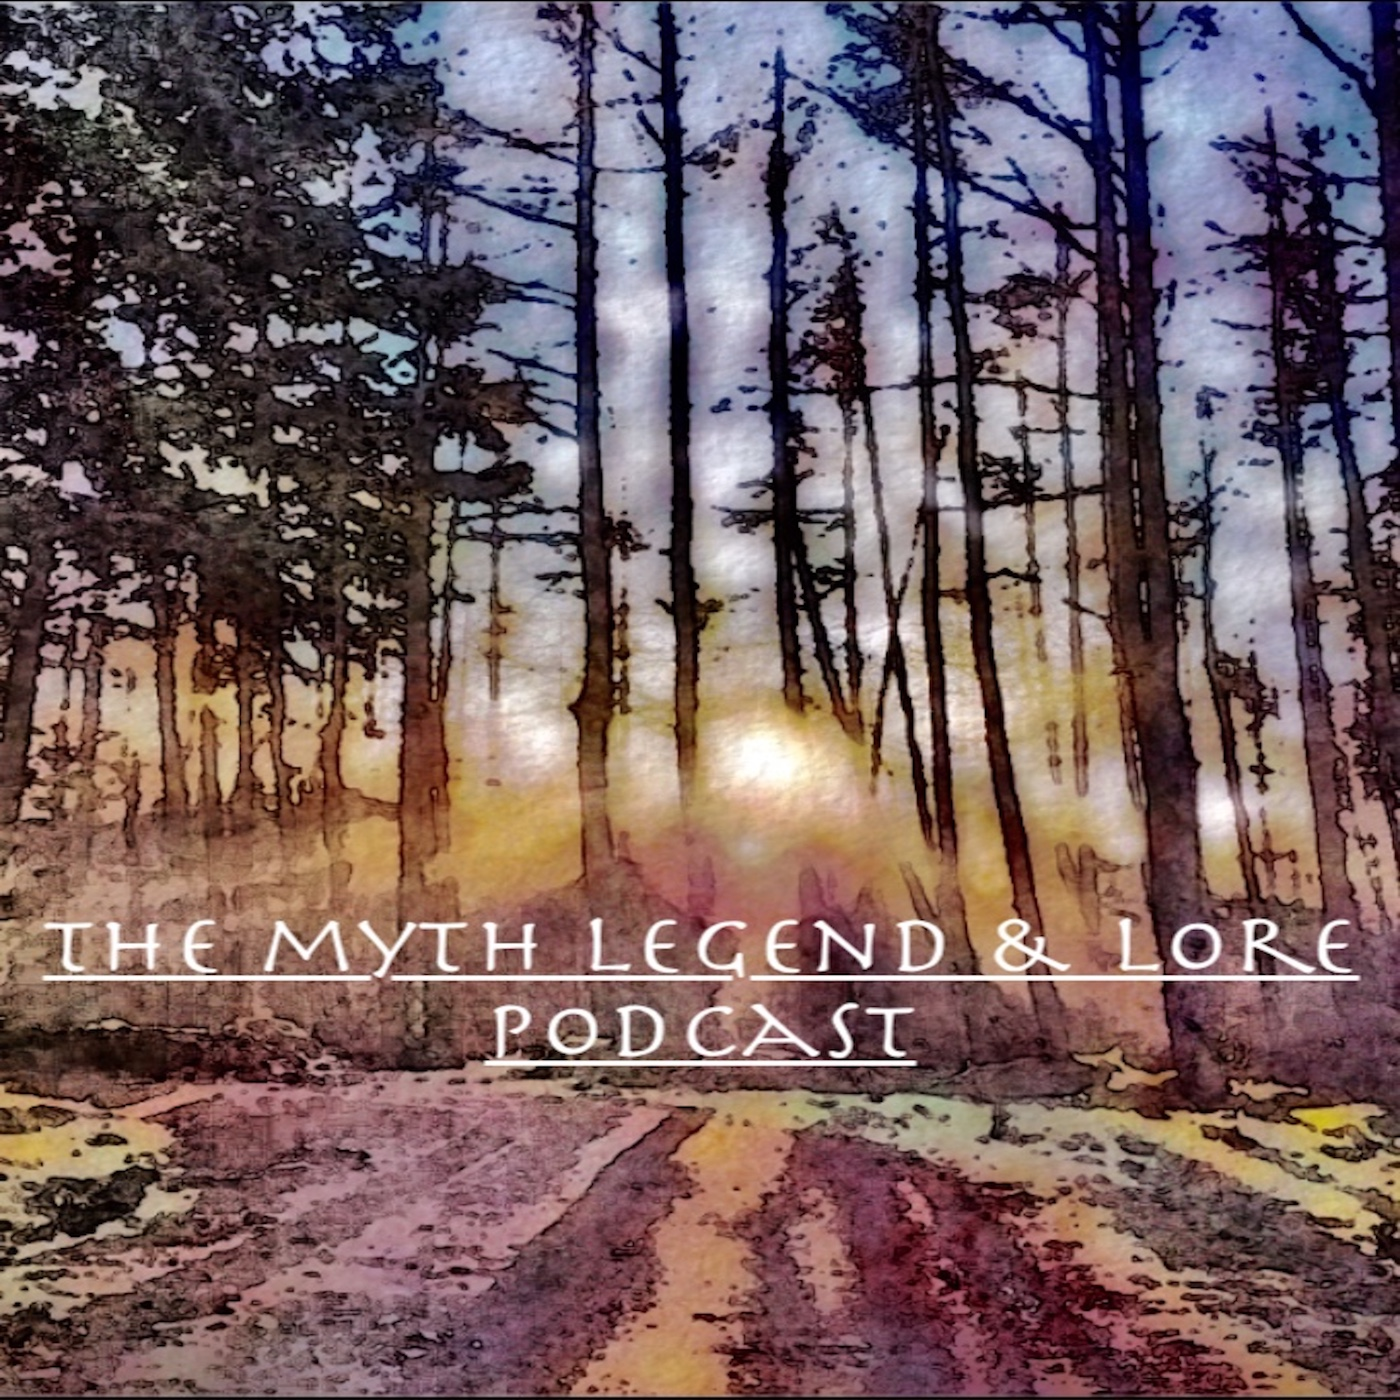 The Myth Legend & Lore Podcast